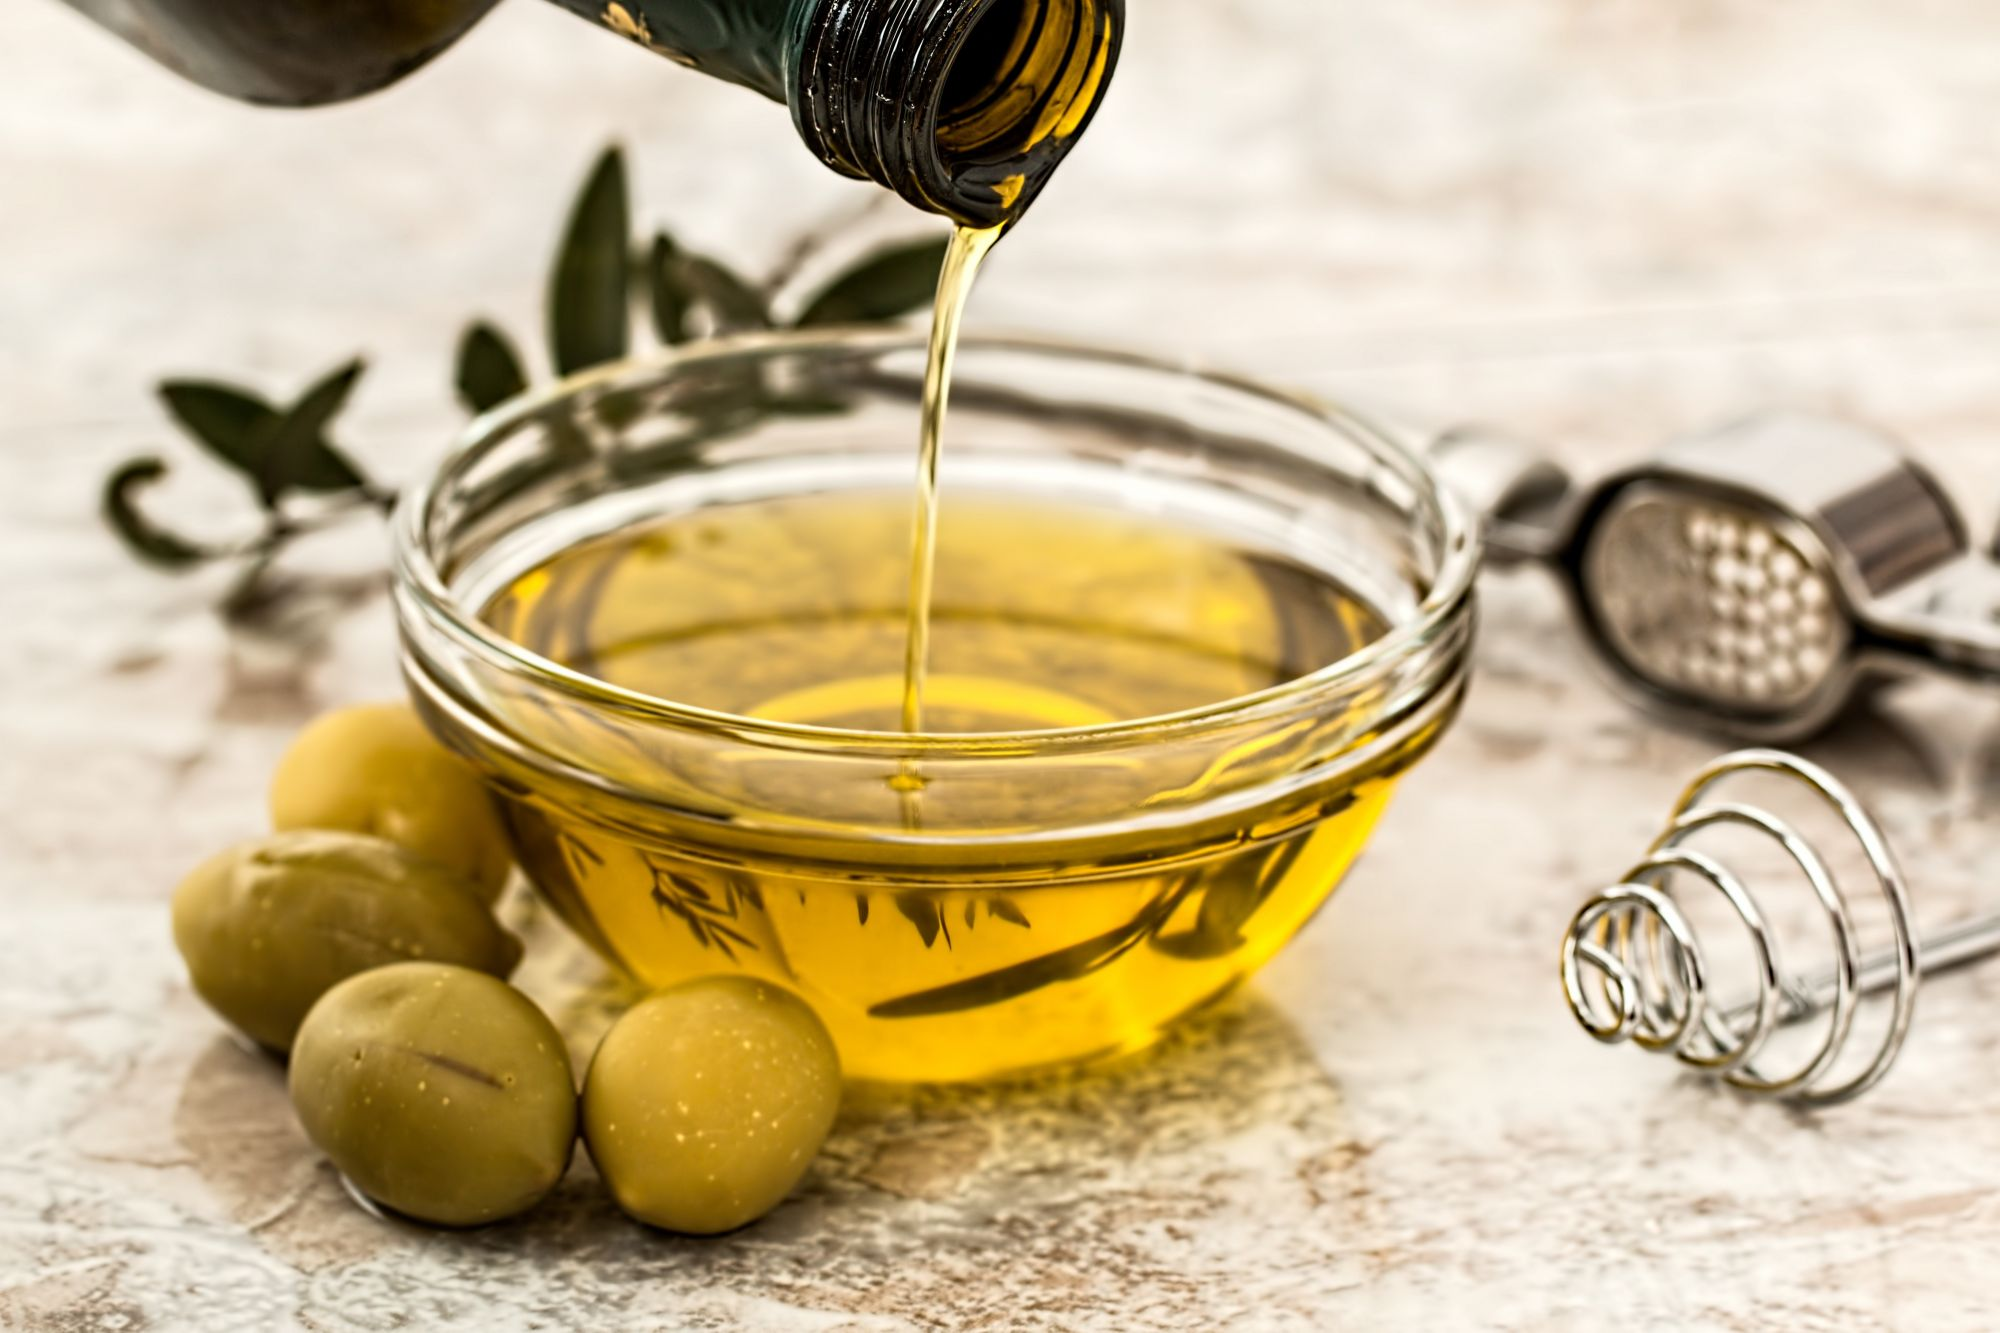 Quarantine Trends: 5 Olive Oil Baked Treats To Try